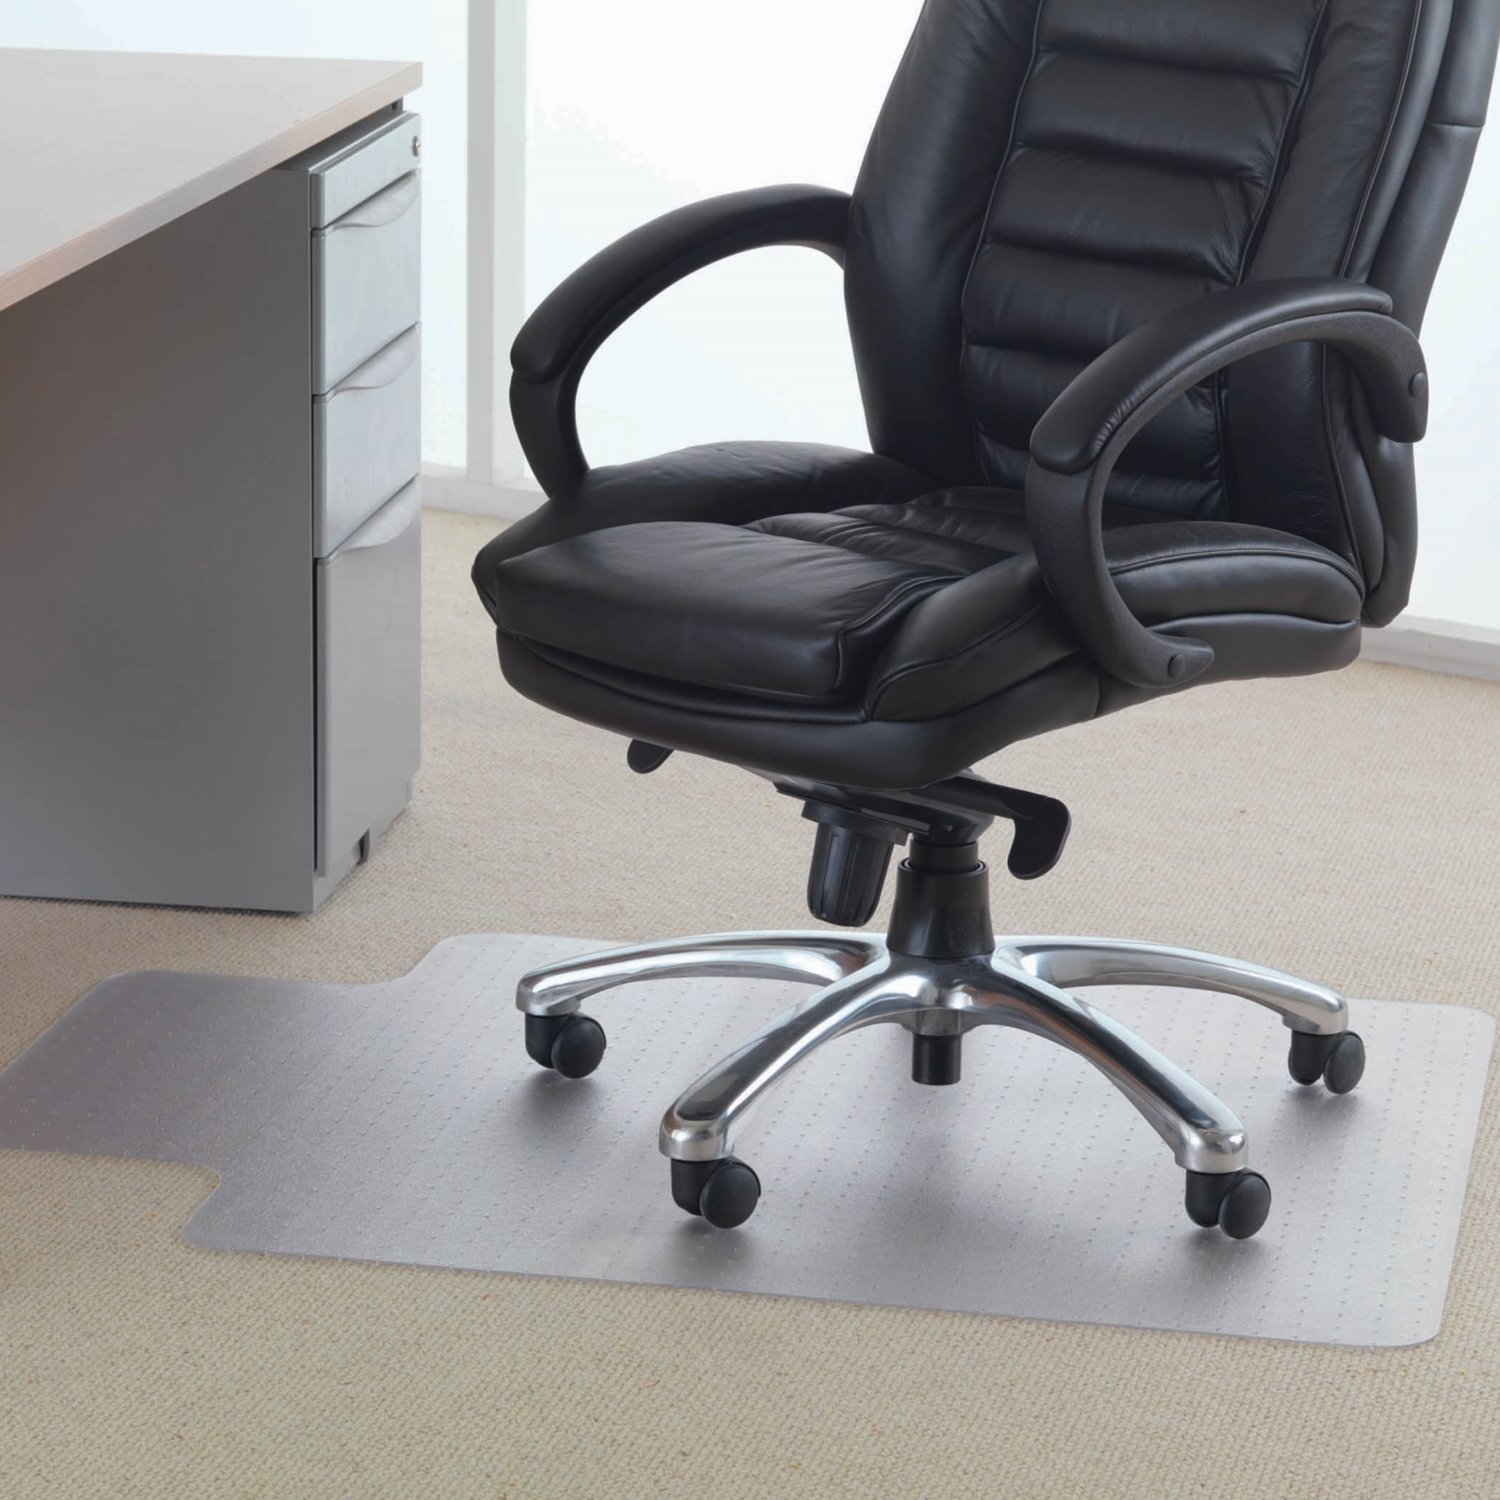 Lutema Clear PVC Plastic Chair Mat for Carpet or Wood Floors 36'' x 48'' Non-Slip Plastic Mat - Office Floor Protection Plastic Mat with Lip - PVC Plastic Mat for Office Chair (1 Pack Gripper Back)